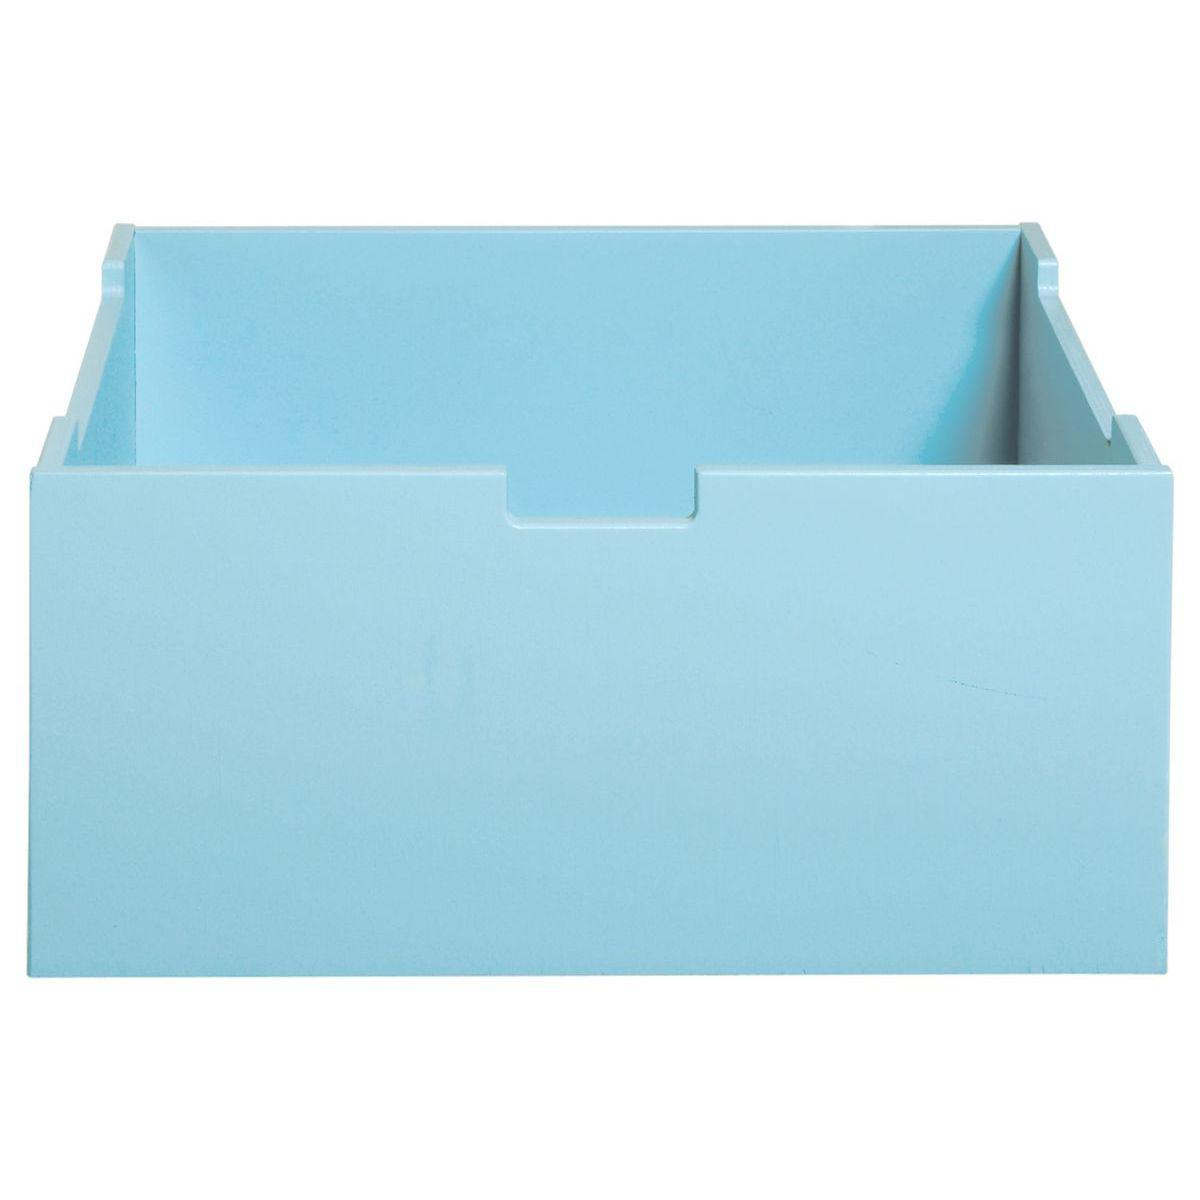 MIX & MATCH by Bopita Tiroir pour commode, armoire et parc Light Blue